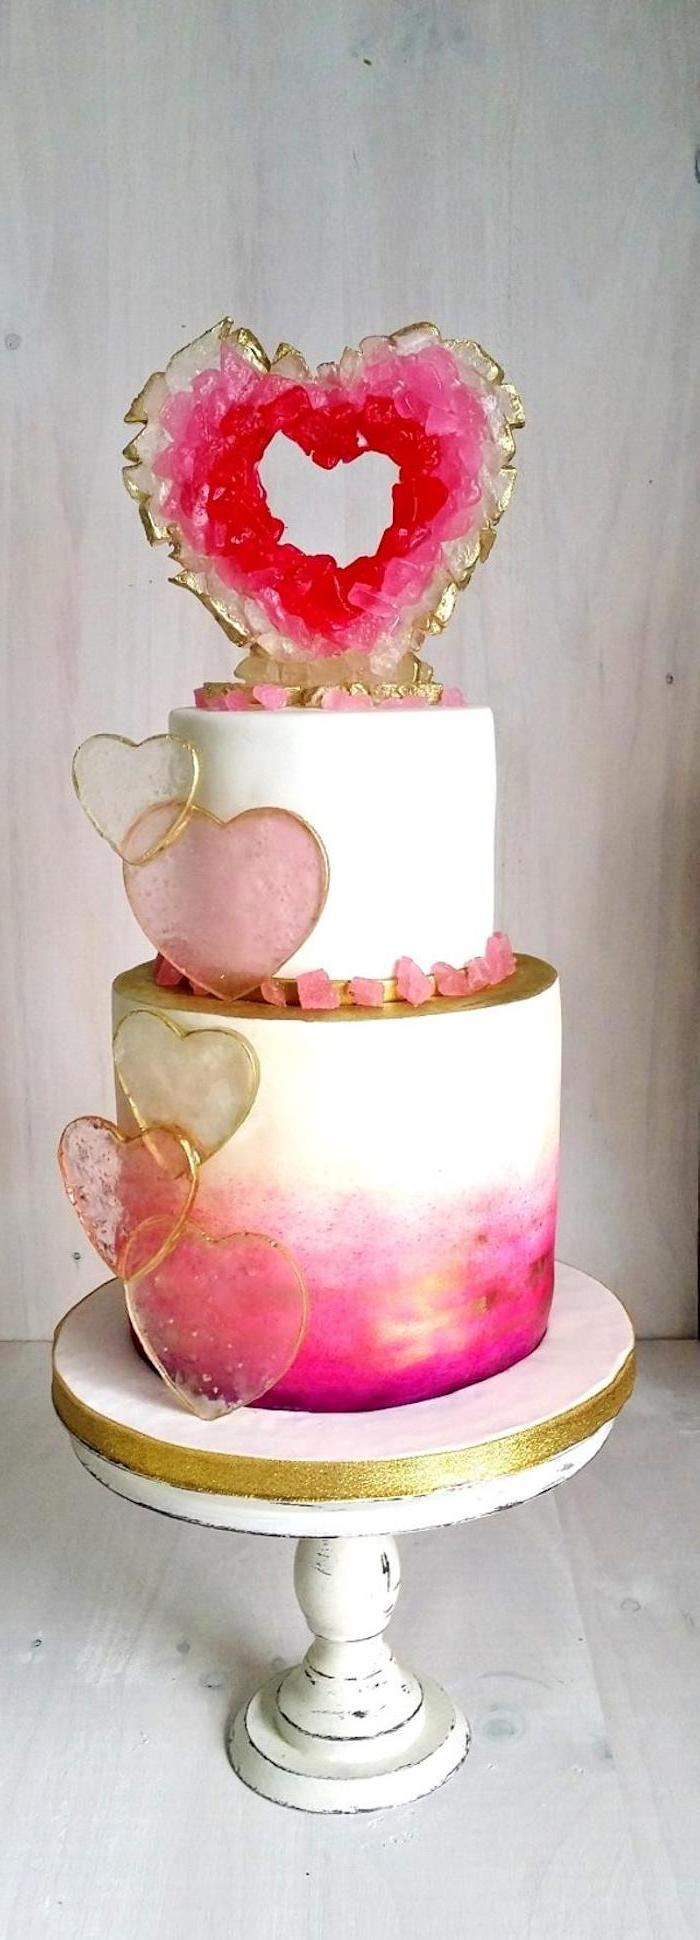 geode cake recipe, two tier cake, covered with pink and white fondant, decorated with pink heart shaped rock candy